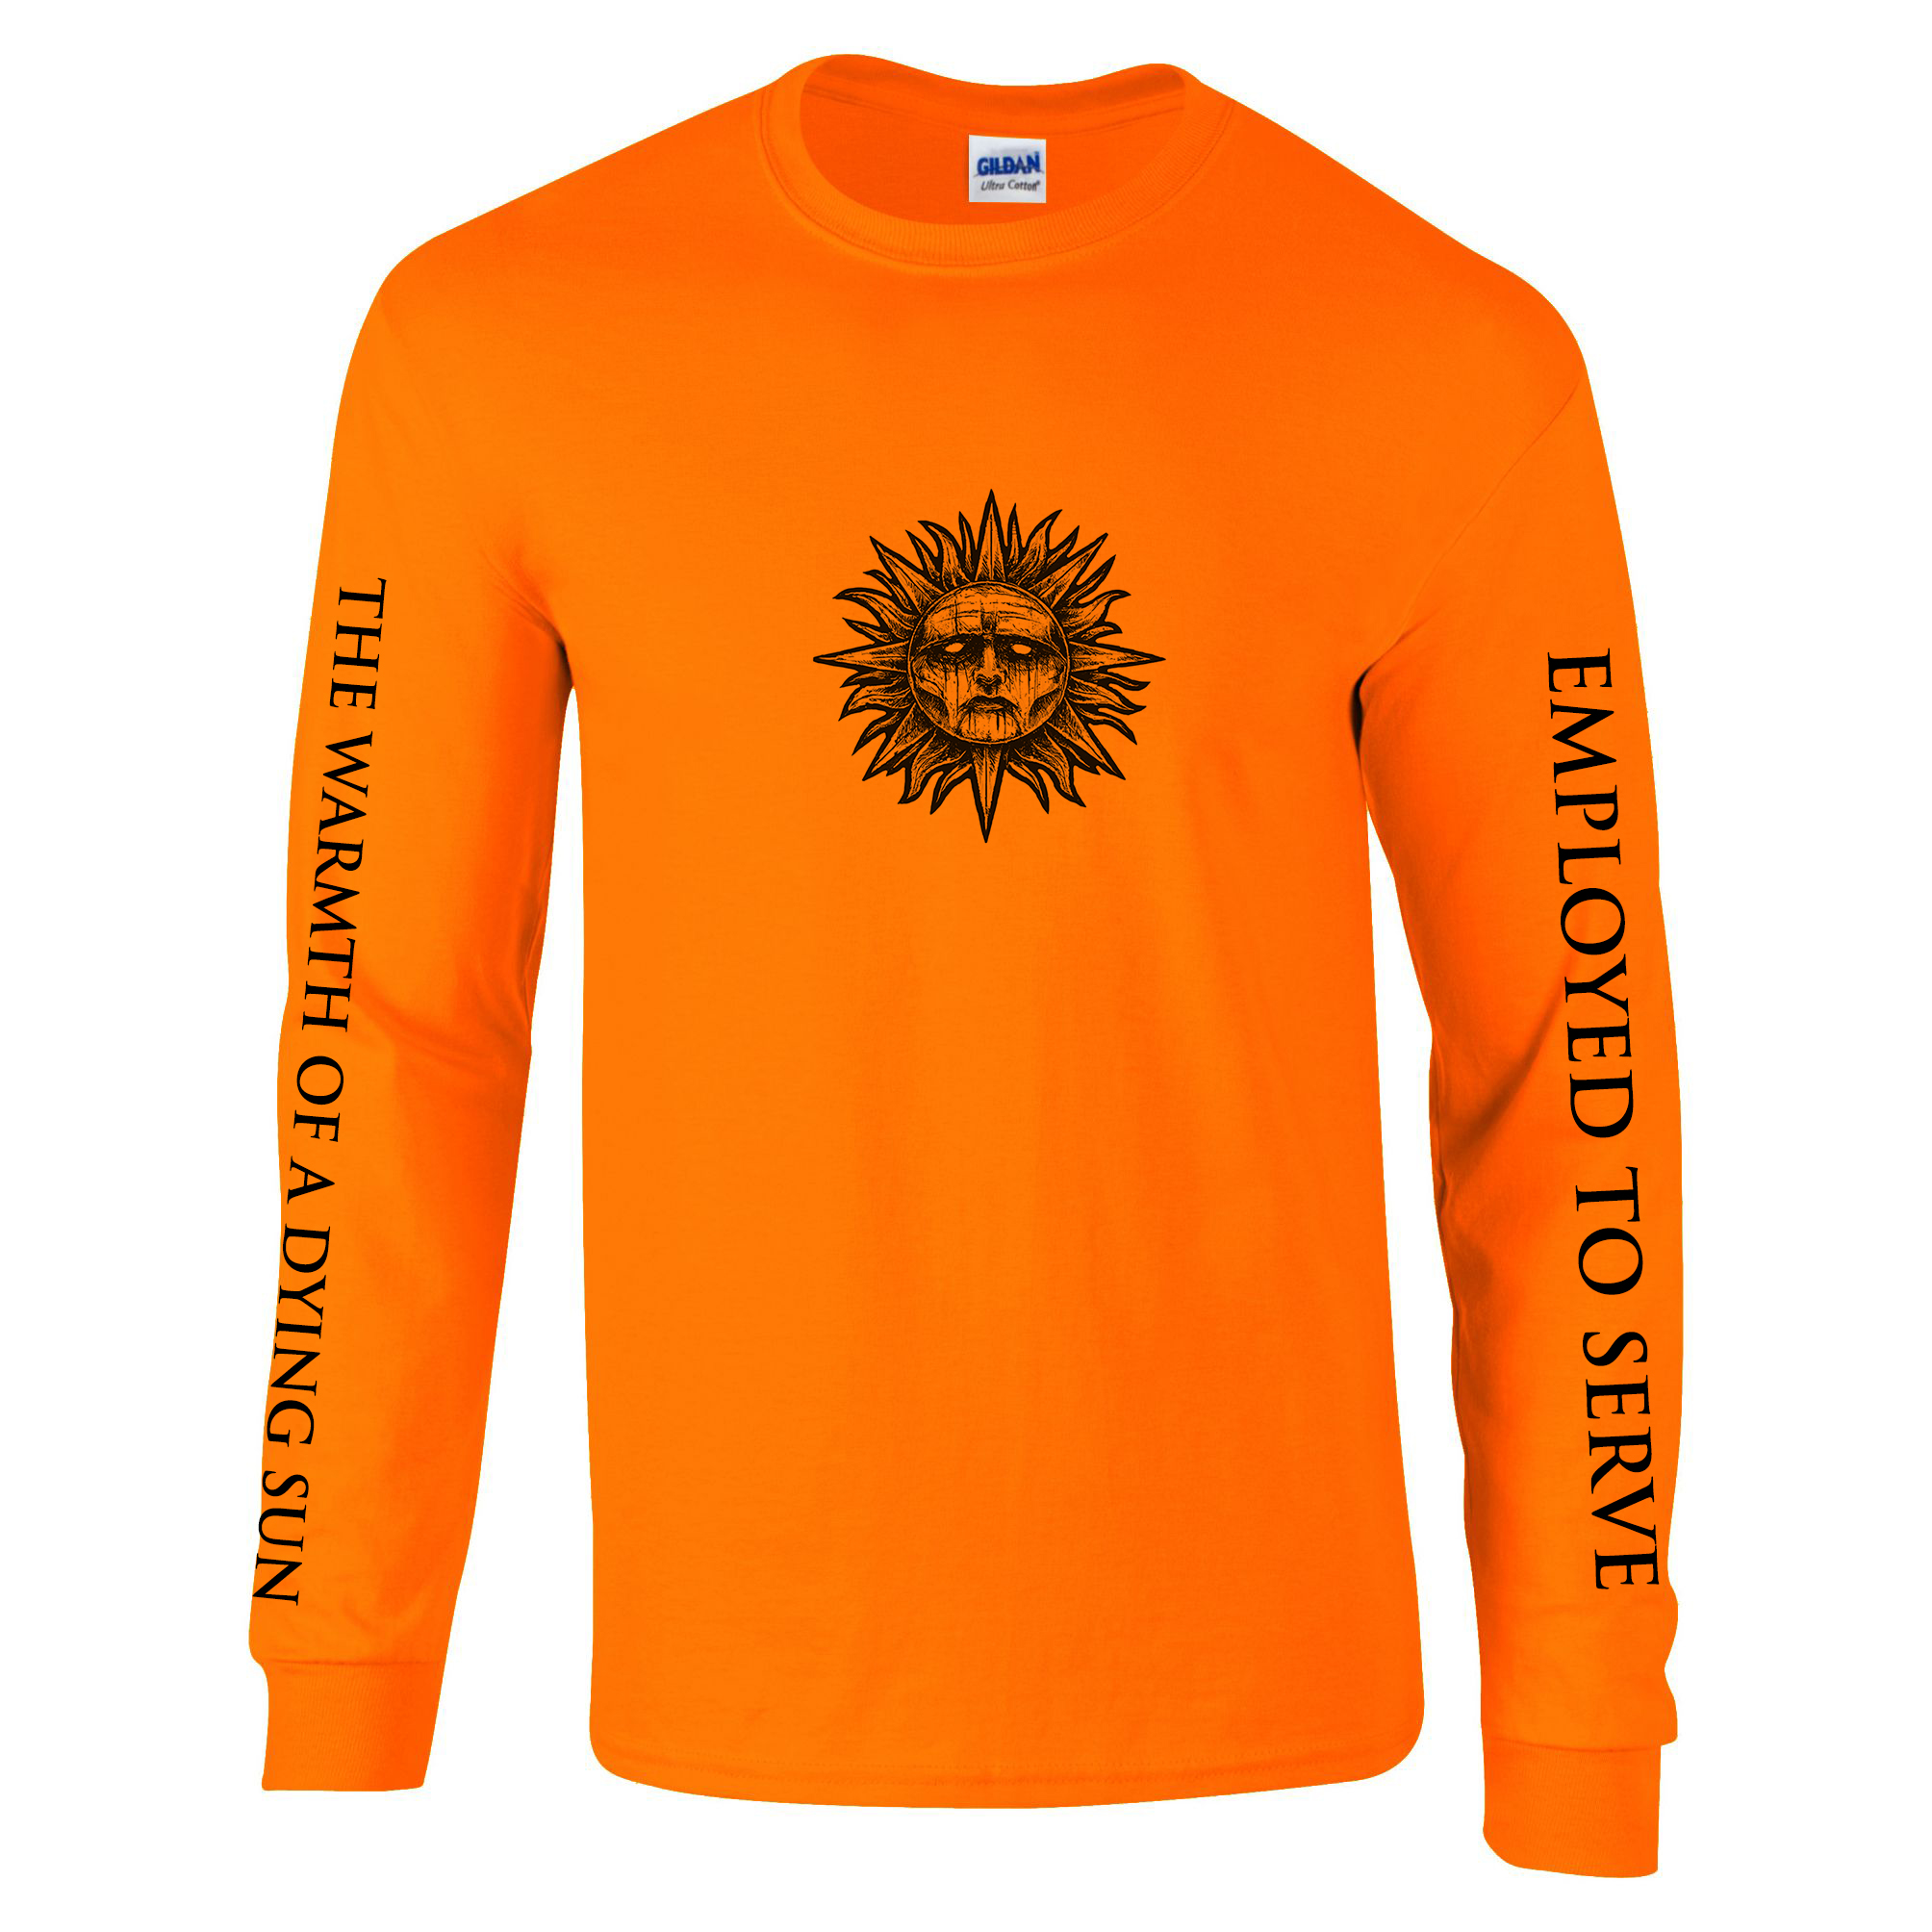 Employed To Serve - The Warmth Of A Dying Sun orange long sleeve PREORDER